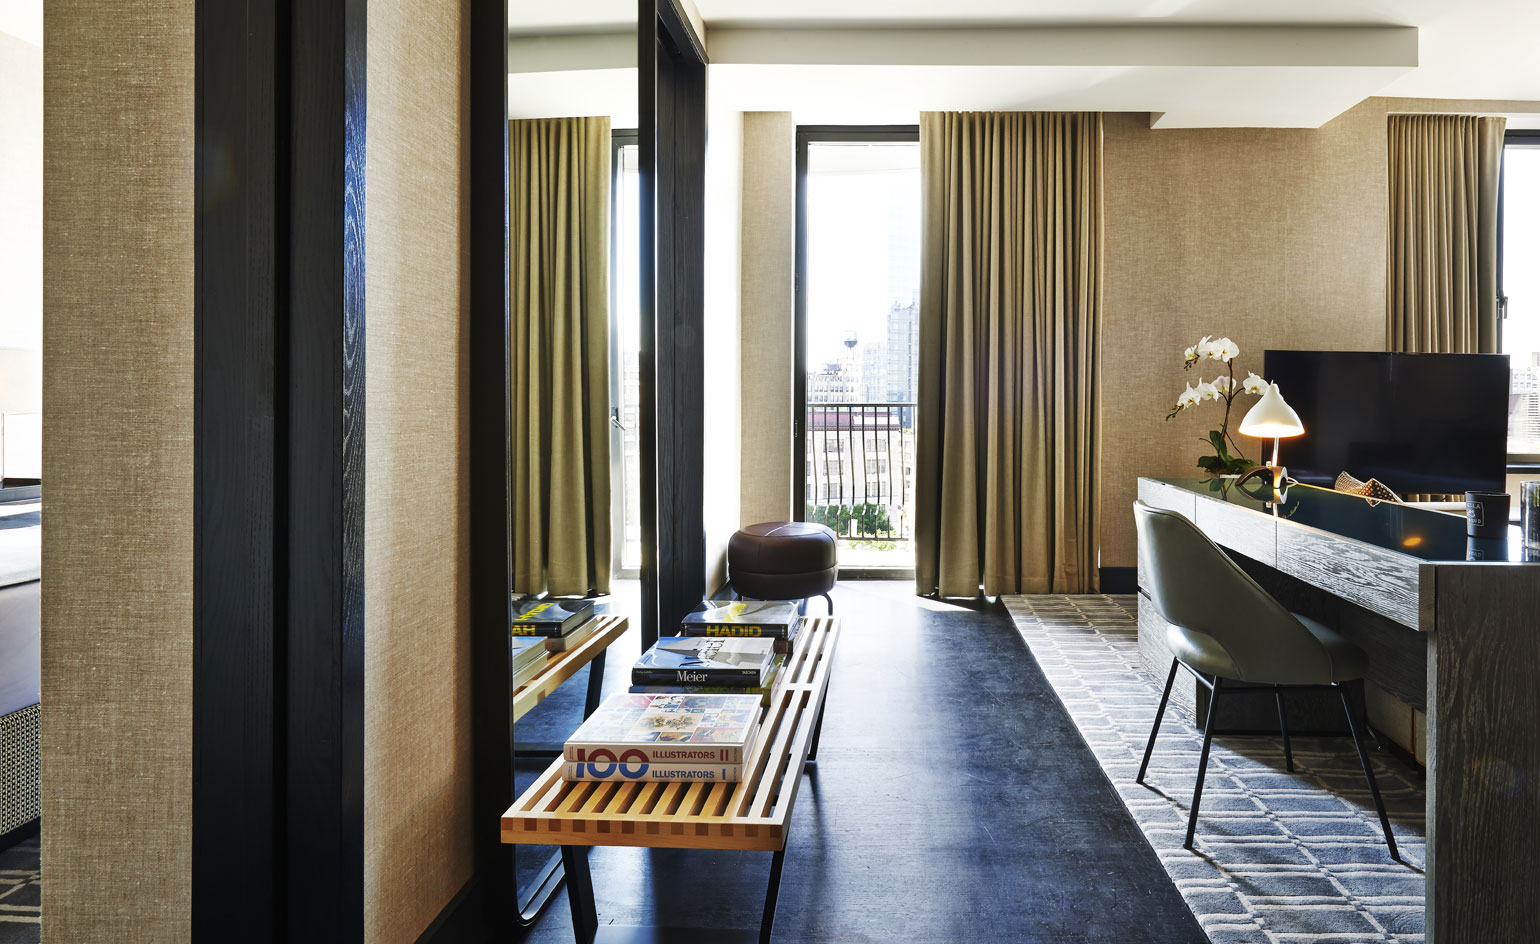 Sixty soho hotel review new york usa wallpaper for Sixty hotel new york